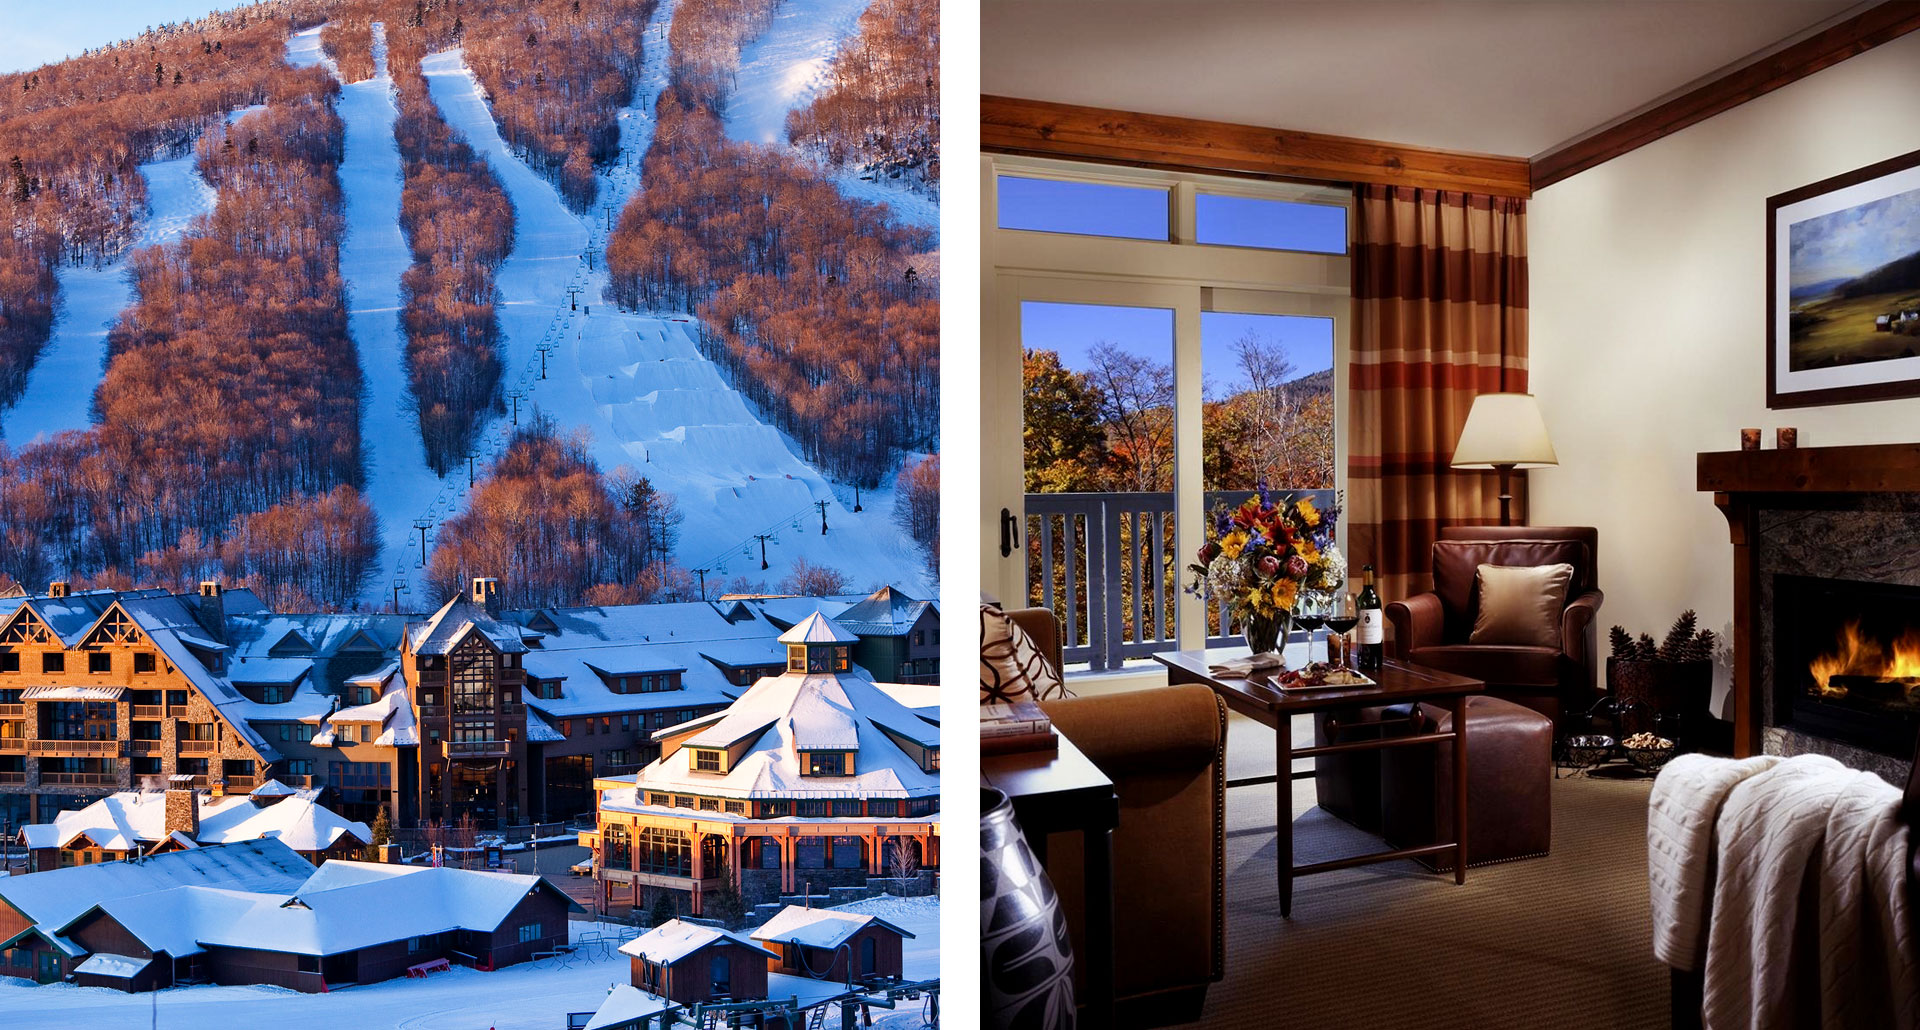 STOWE MOUNTAIN LODGE - boutique hotel in Stowe